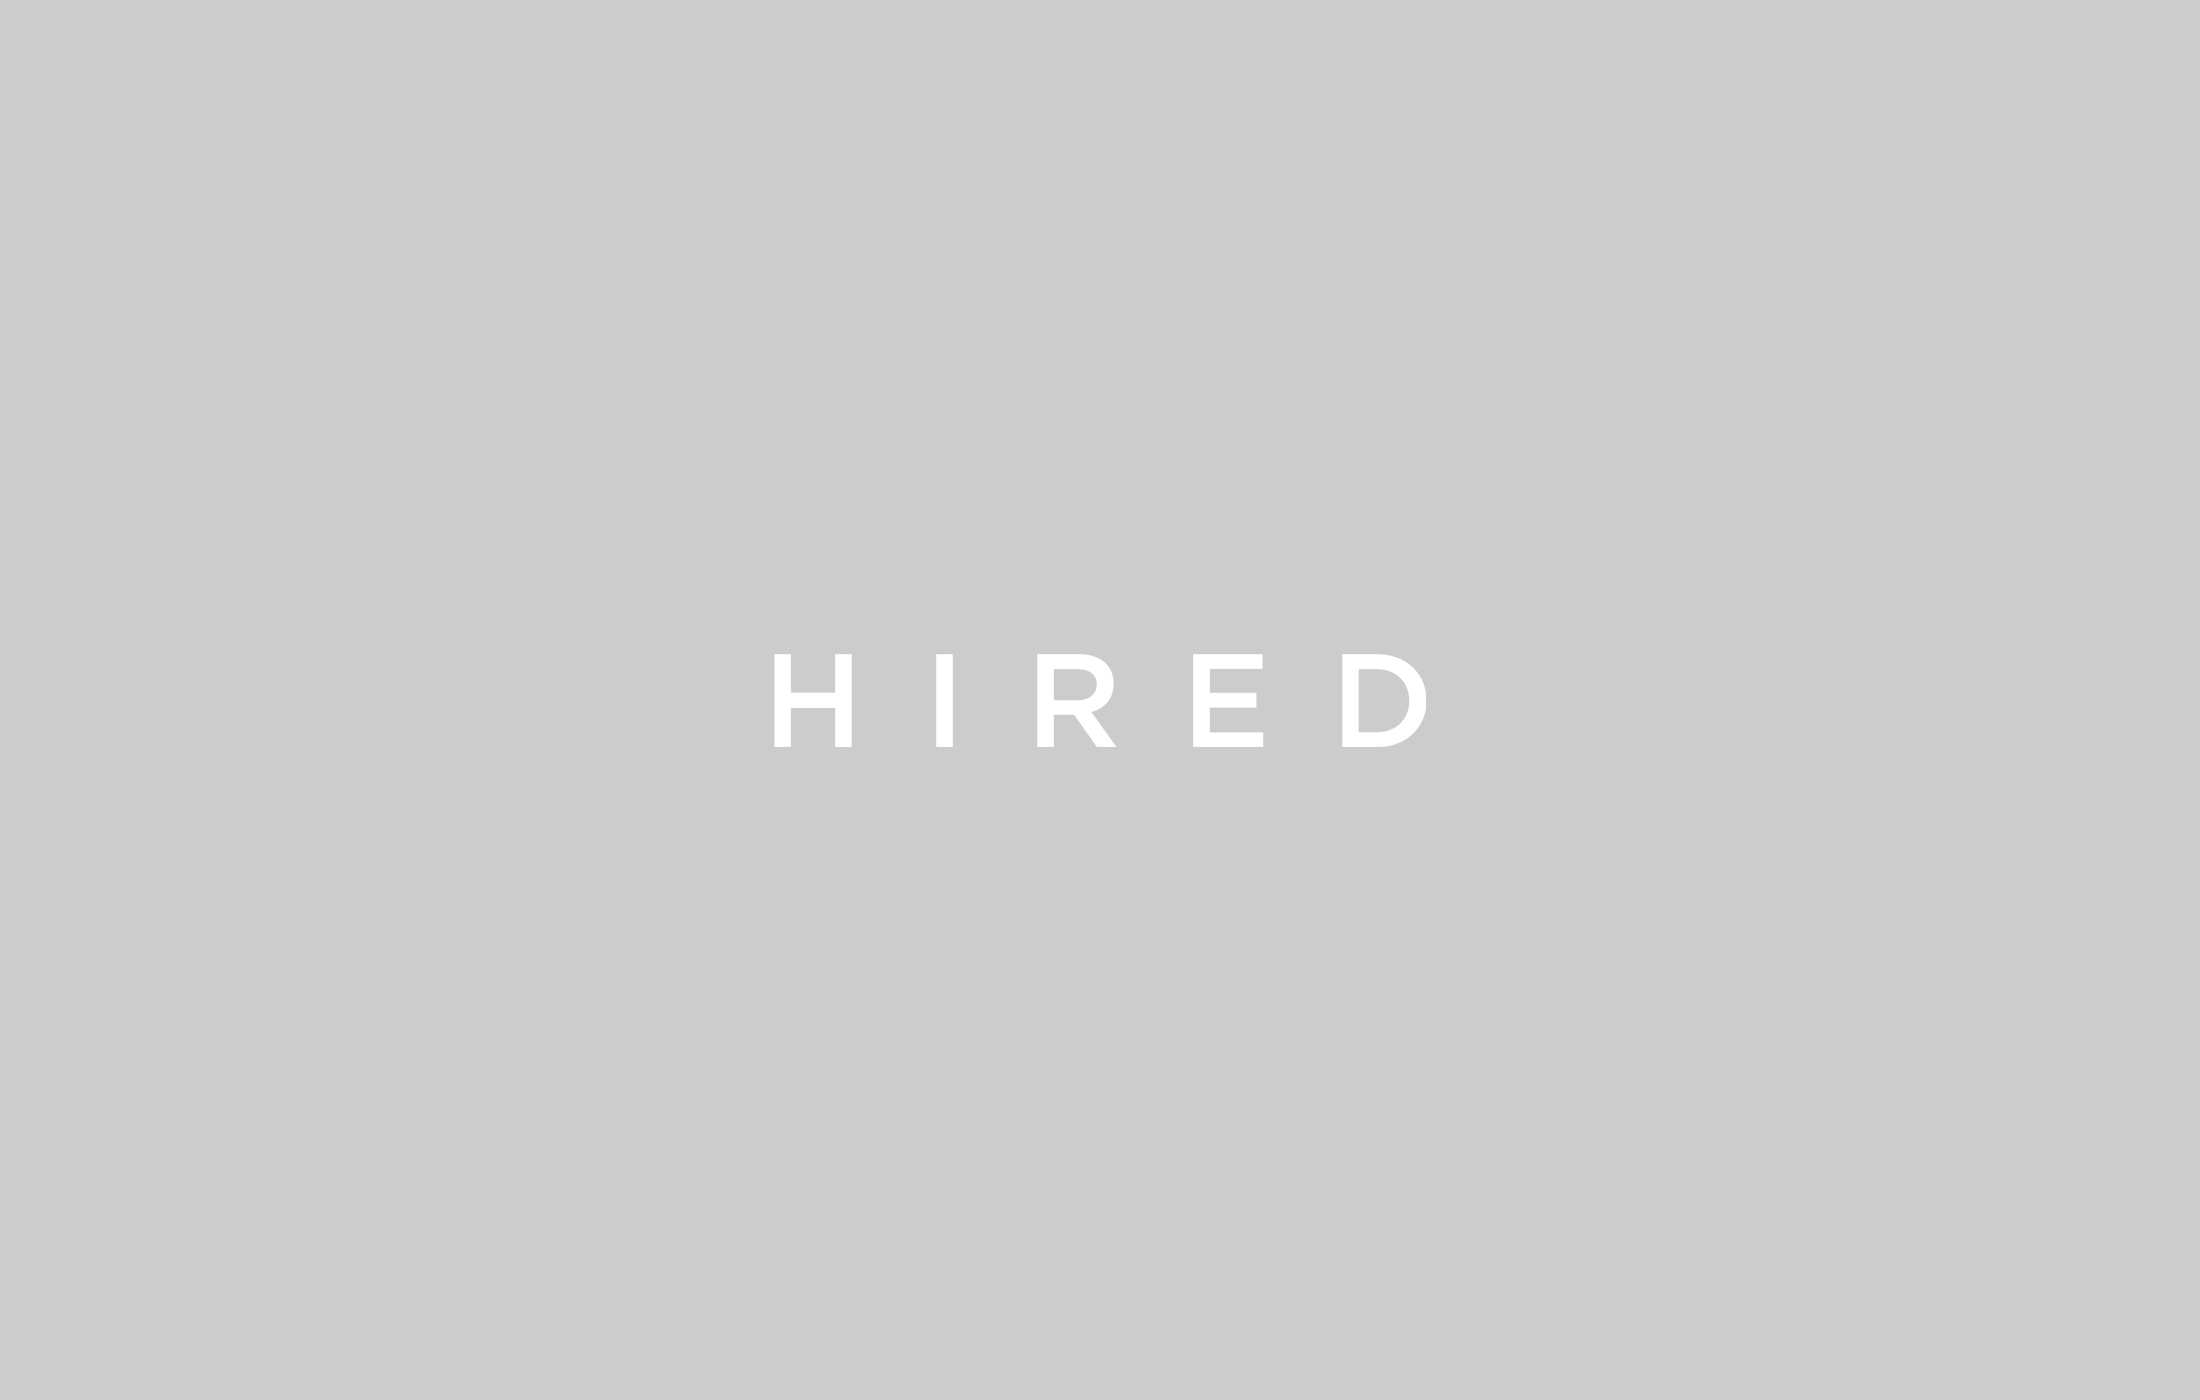 hired-expands-marketplace-to-include-freelance-workers